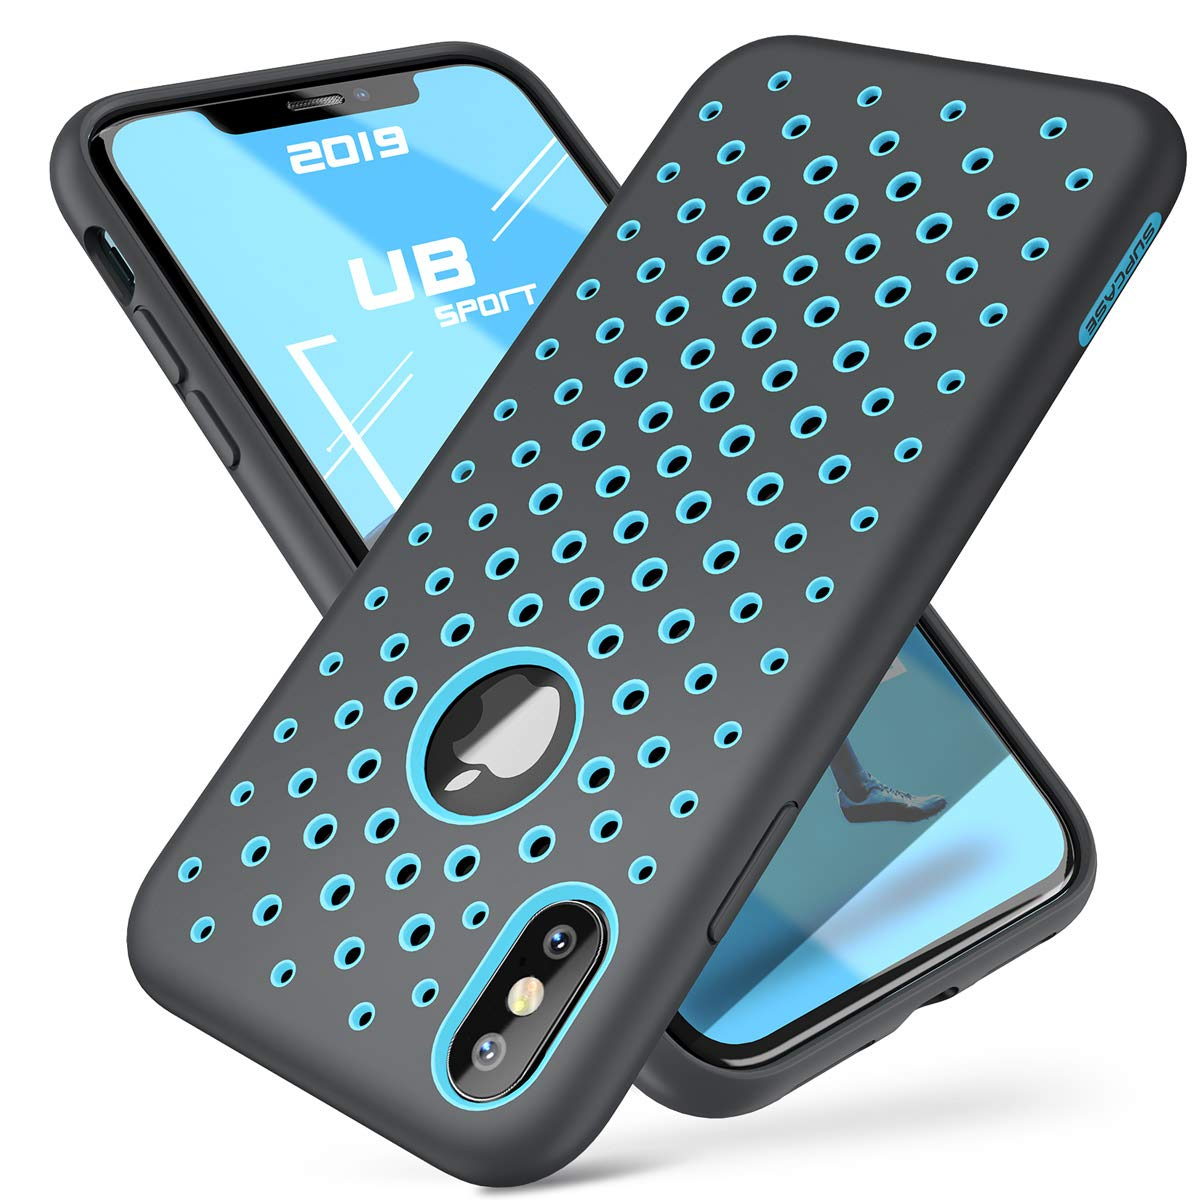 SUPCASE Unicorn Beetle Sport Series for iPhone Xs Case 2018 Release, Liquid Silicone Rubber TPU Premium Hybrid Case [Hole Pattern] with Heat Dissipation (Blue/Gray)